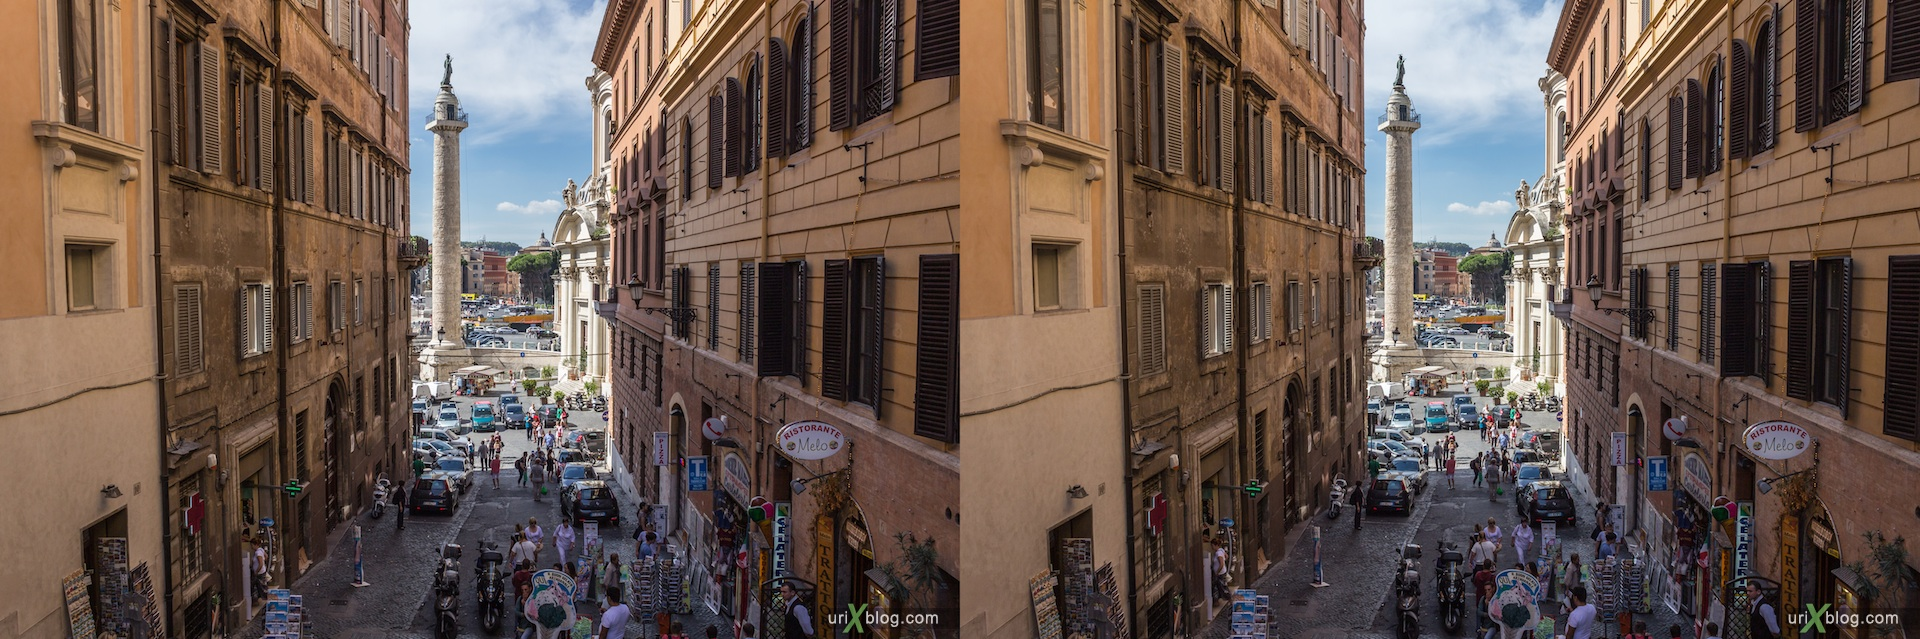 2012, Via Magnanapoli street, stairs, Trajan column, 3D, stereo pair, cross-eyed, crossview, cross view stereo pair